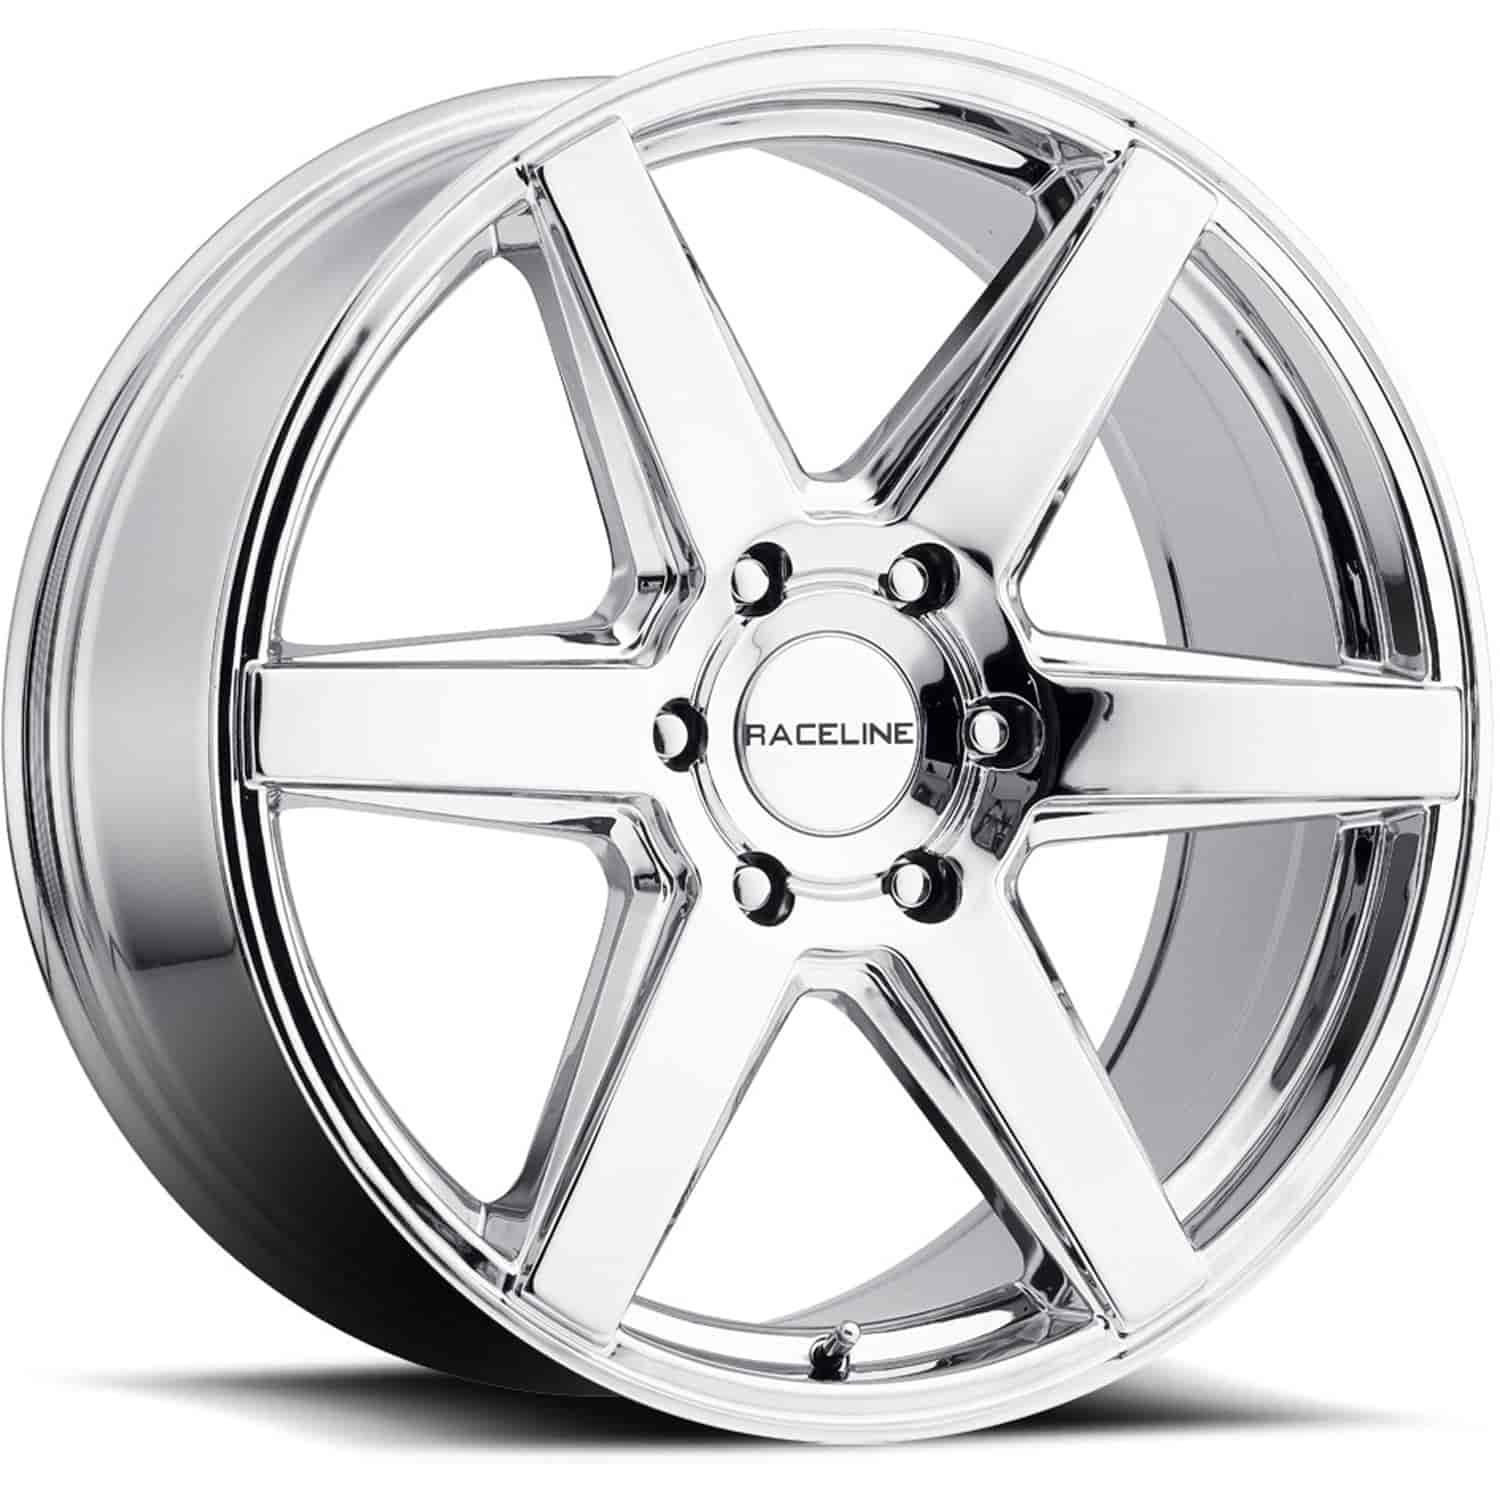 Raceline Wheels 156C8806235